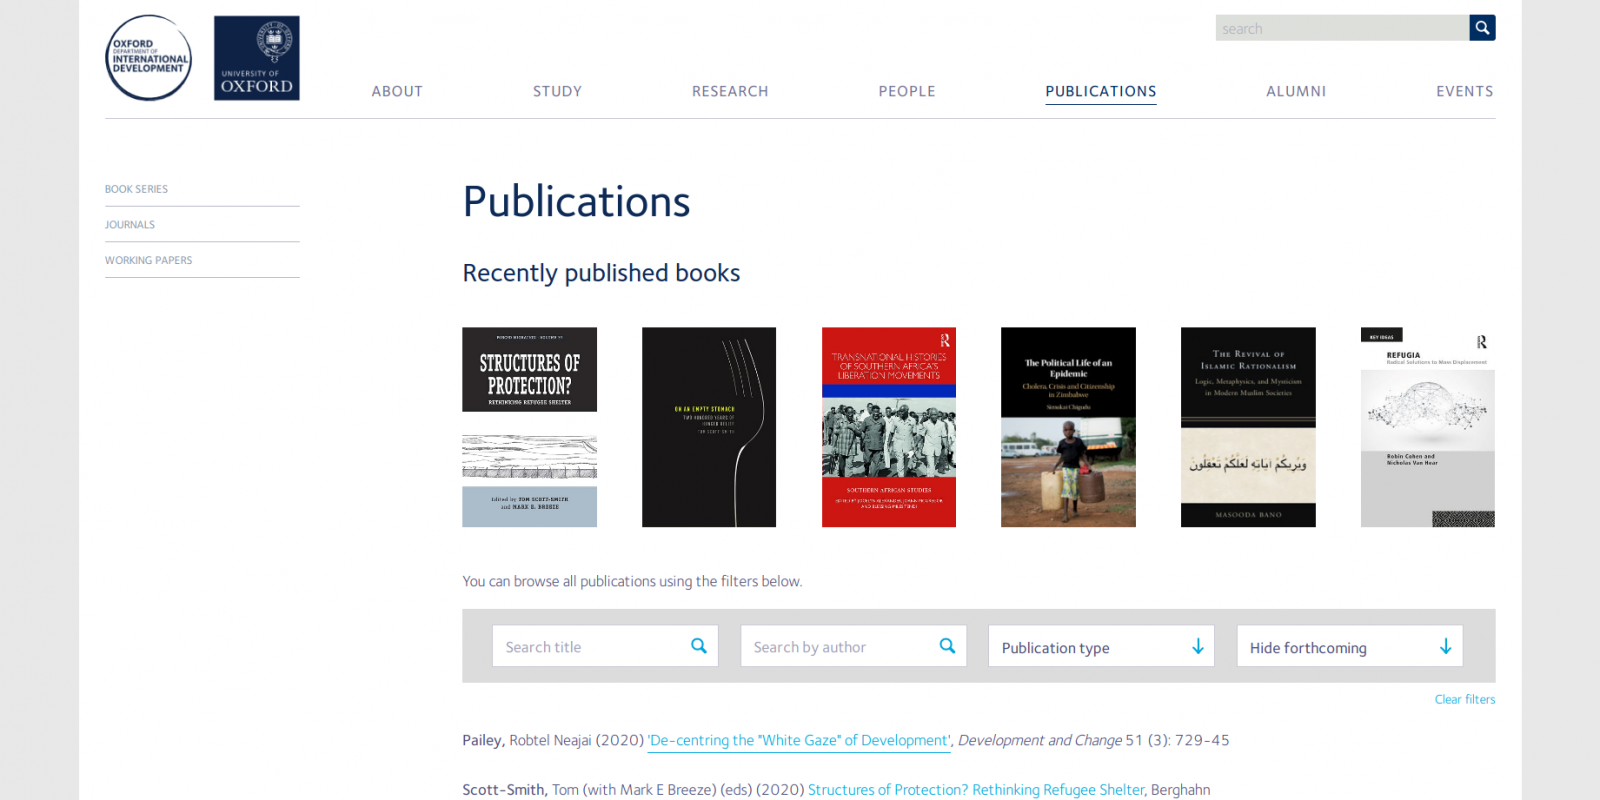 Oxford Department of International Development - website - publications page